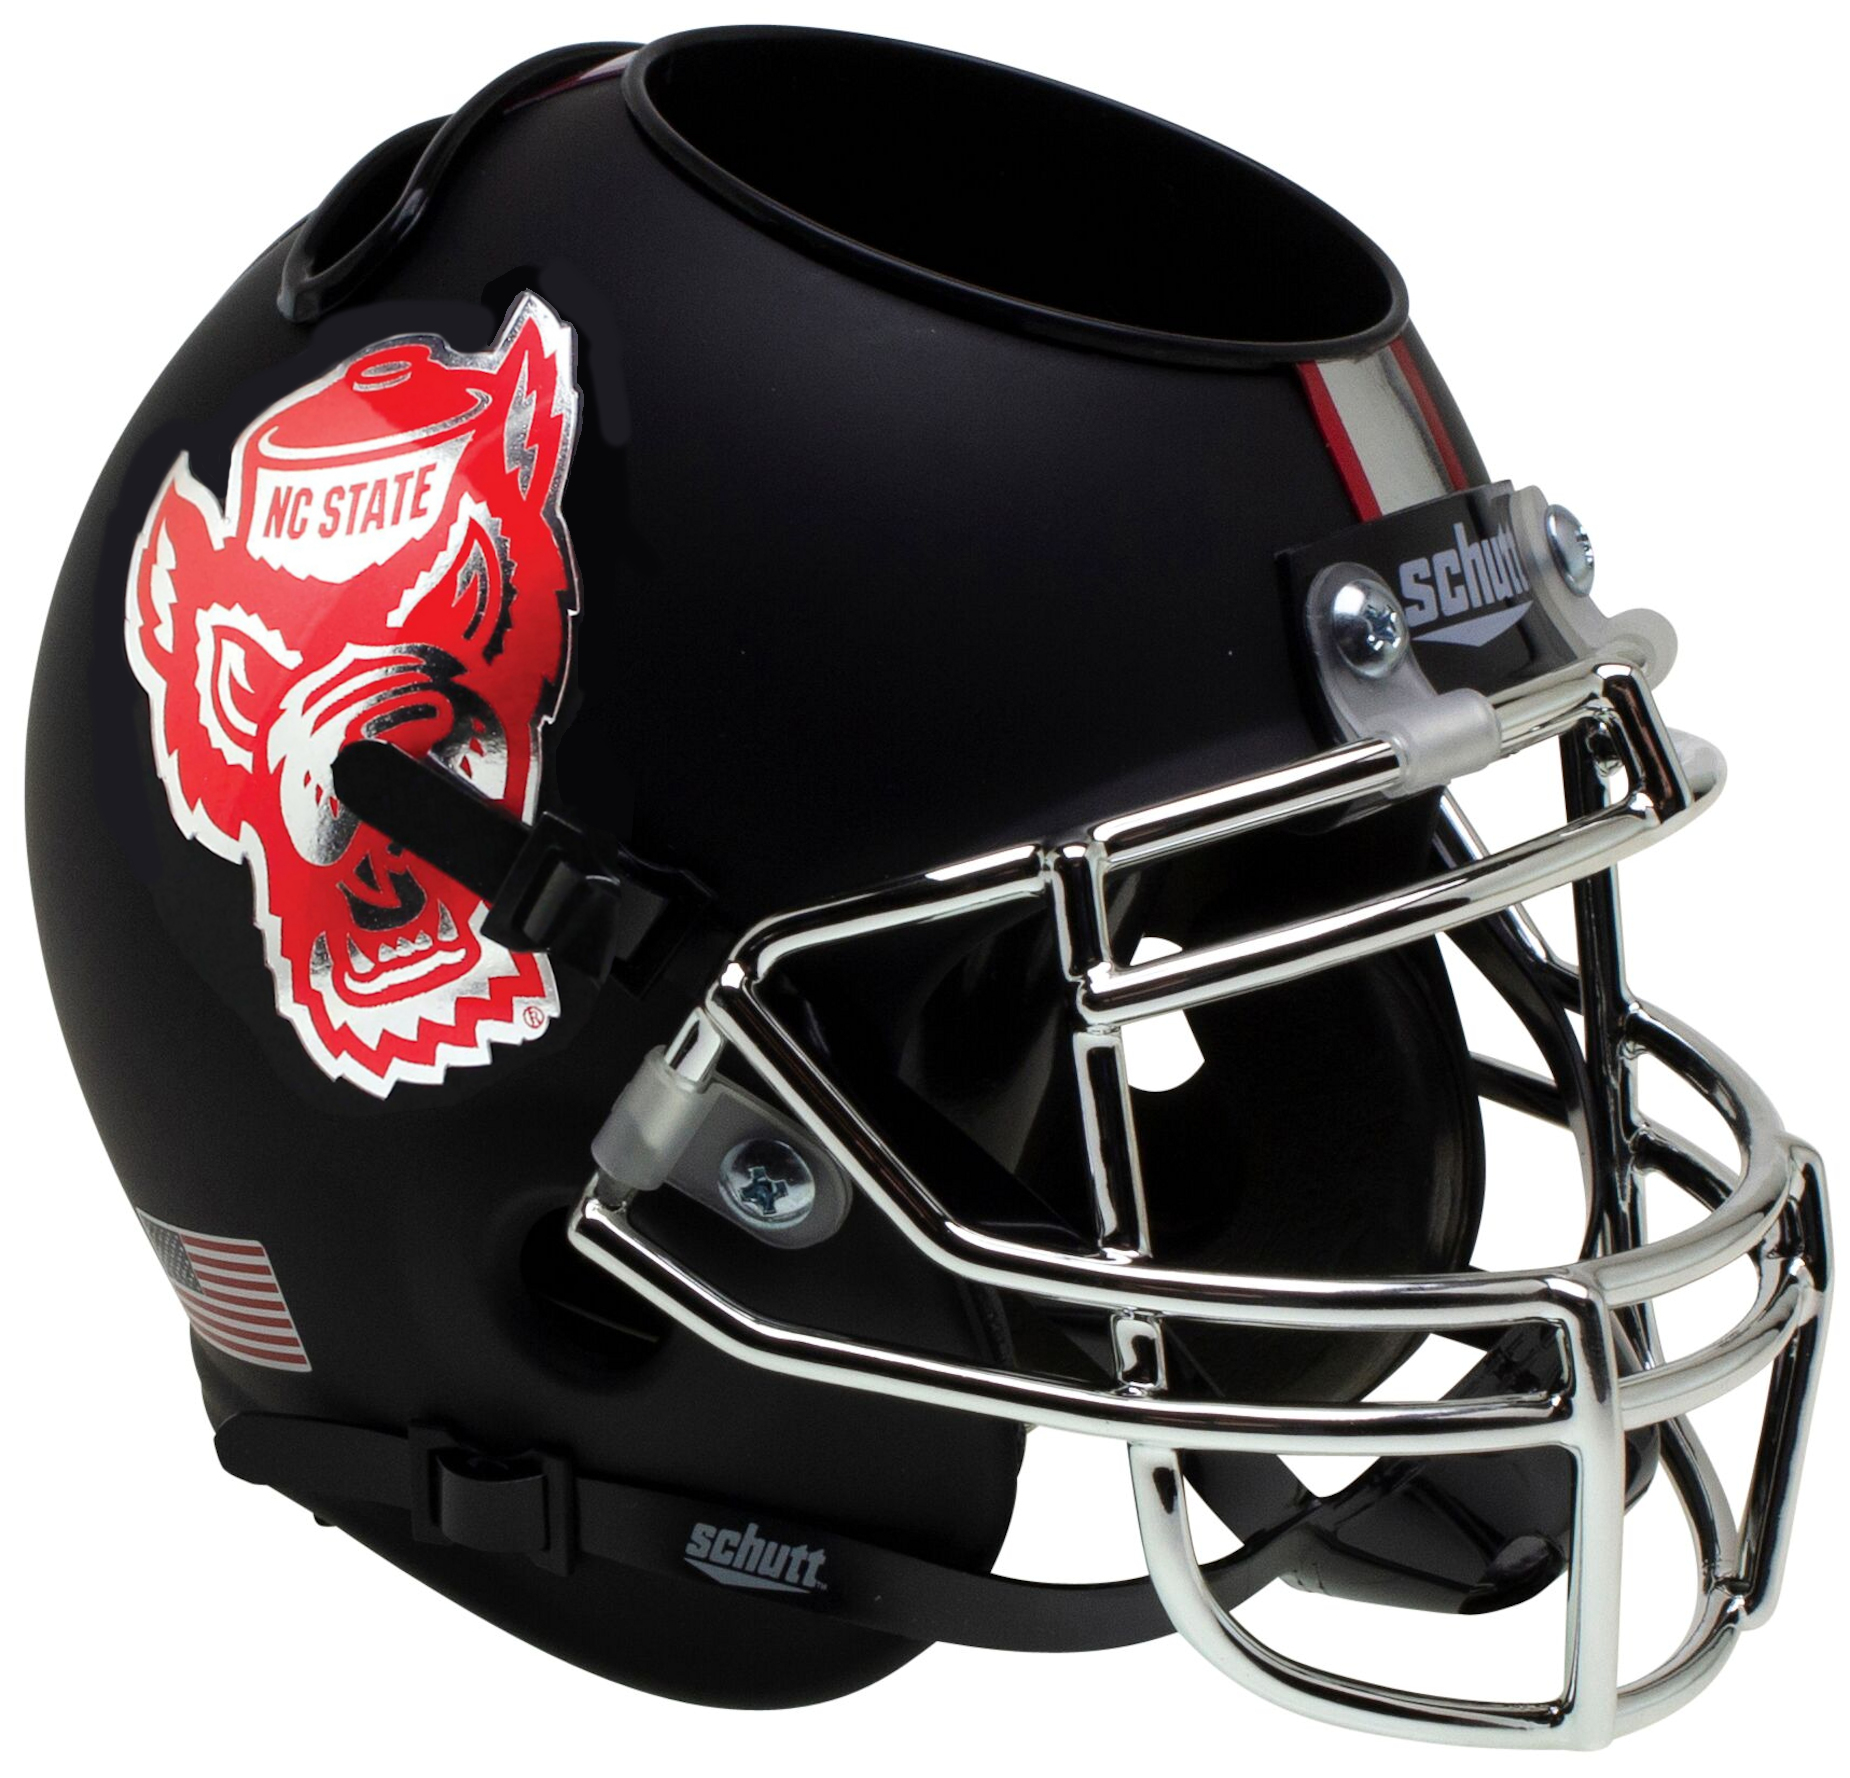 North Carolina State Wolfpack Miniature Football Helmet Desk Caddy <B>Matte Black</B>